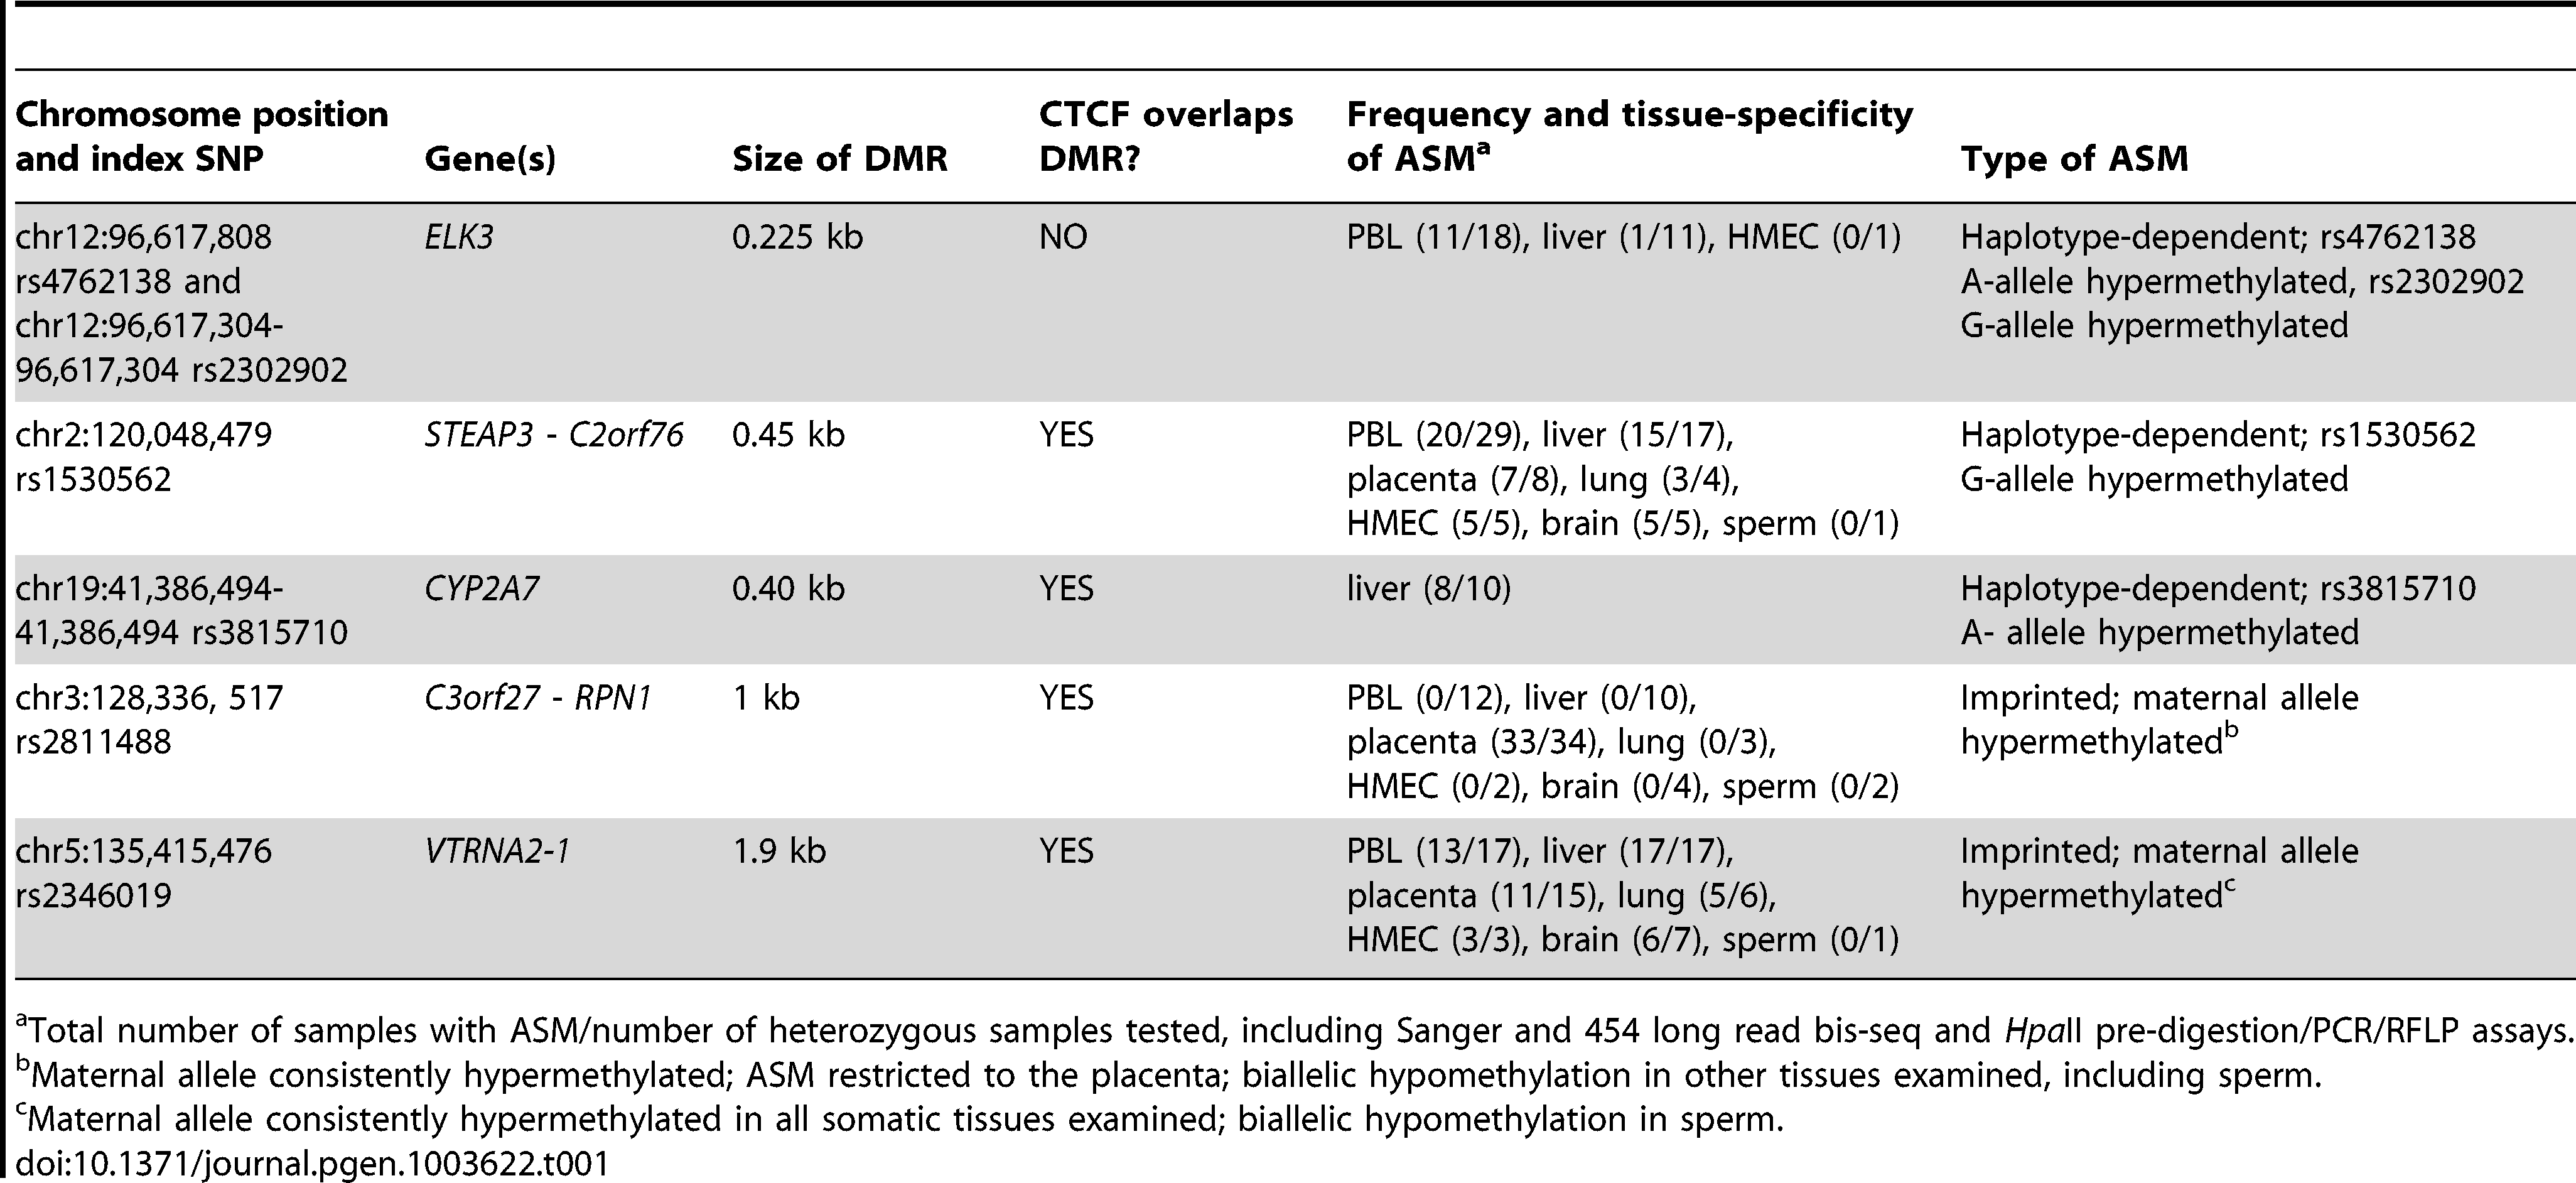 Summary of the 5 DMRs characterized in this report.